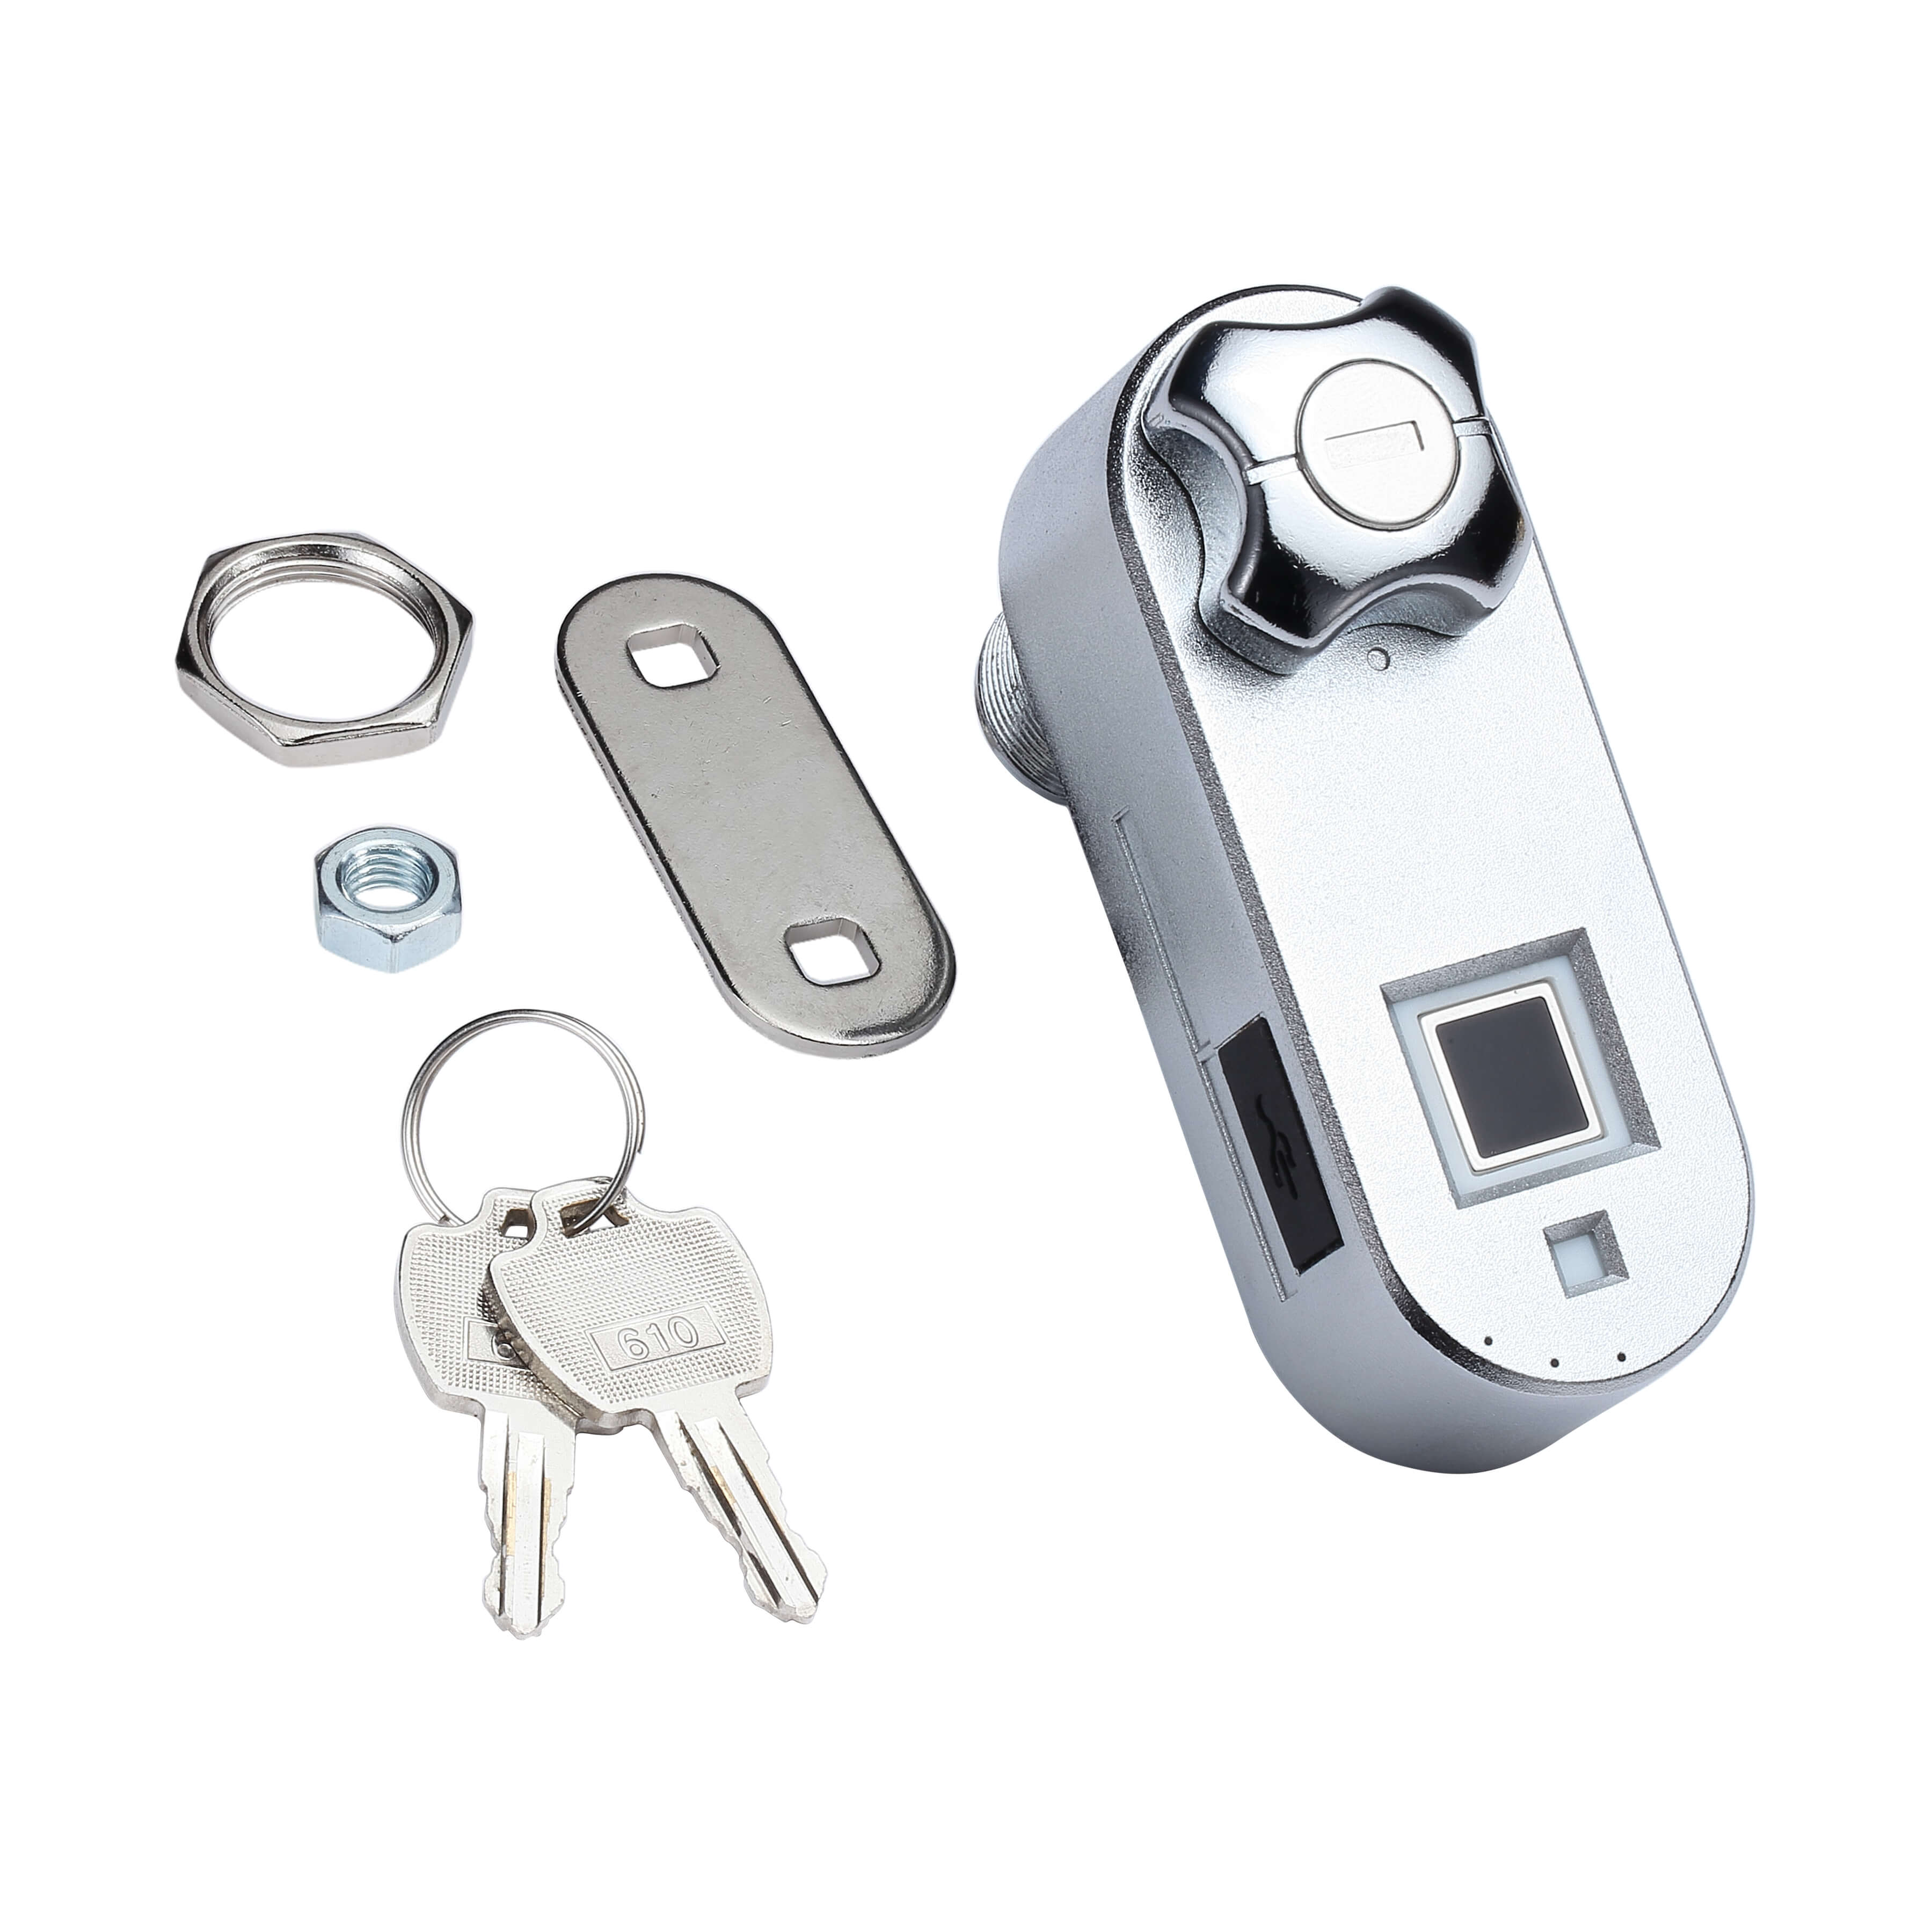 Fingerprint Cabinet Lock with Spare Keys | Midas Touch